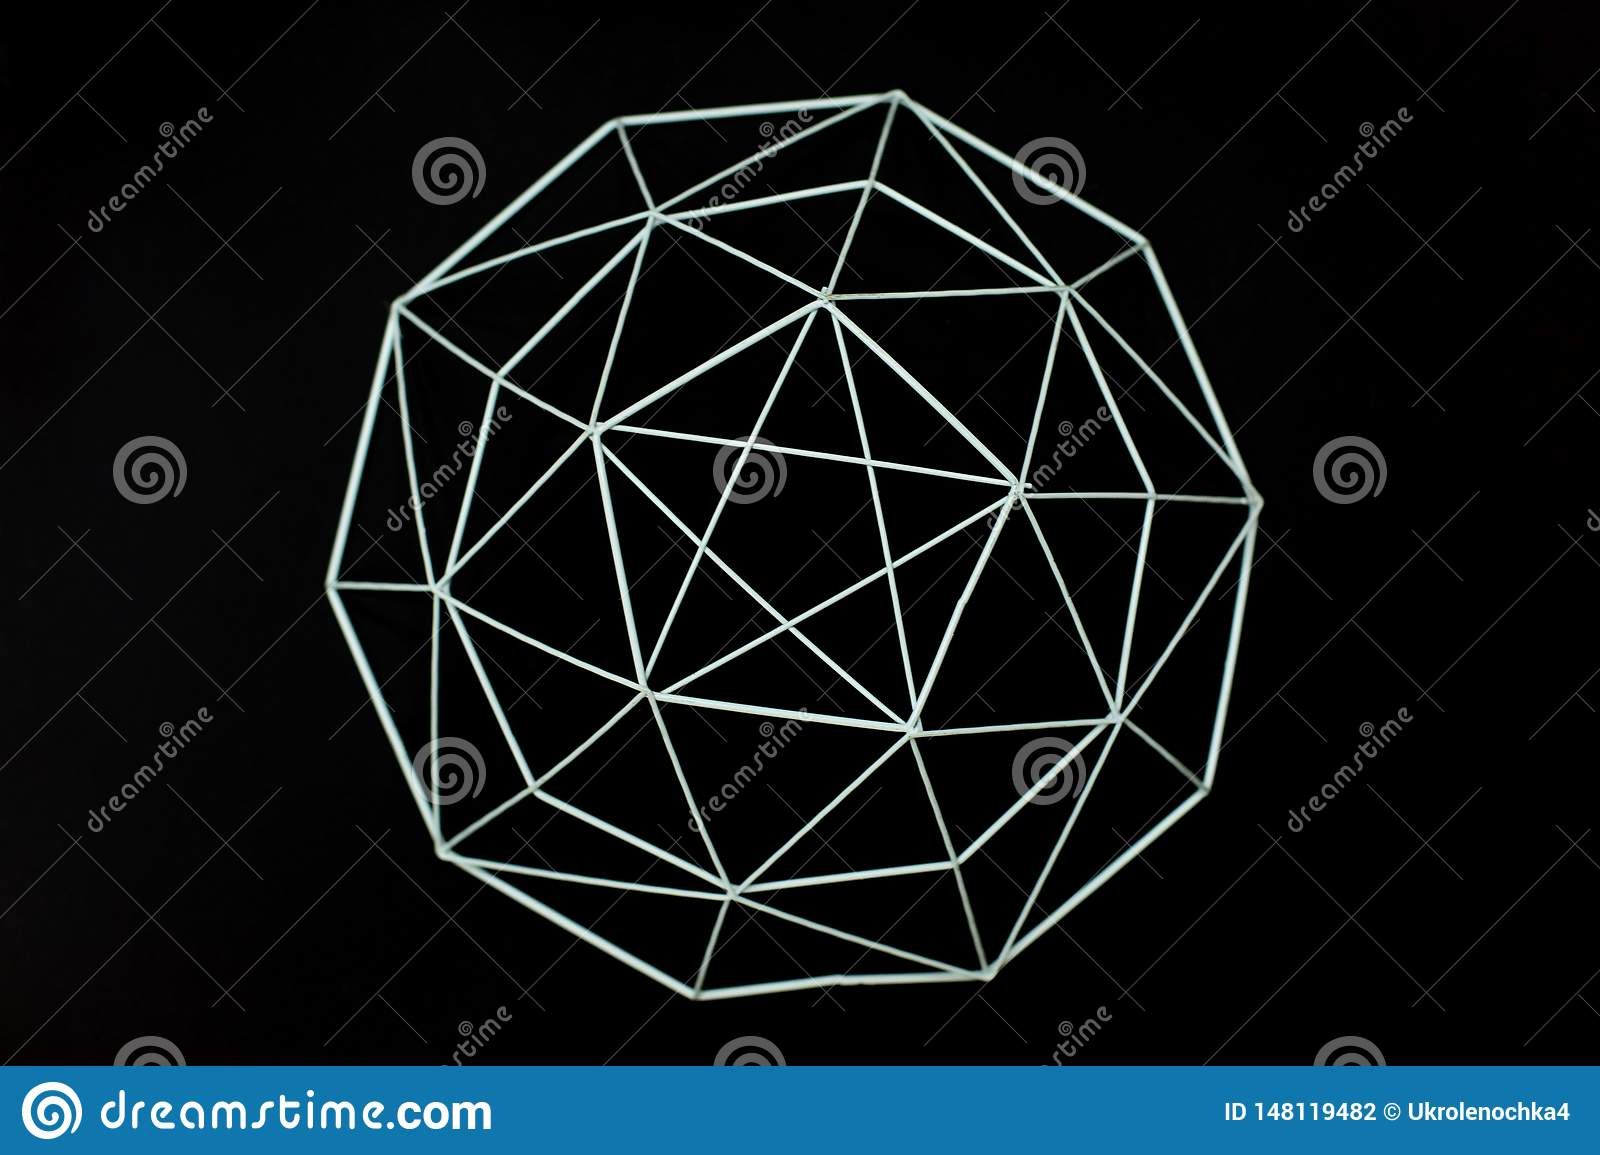 Metal wire decorative geometric elements, basket, vase on a black background. MInimal concept. Beautiful abstract pattern of metal